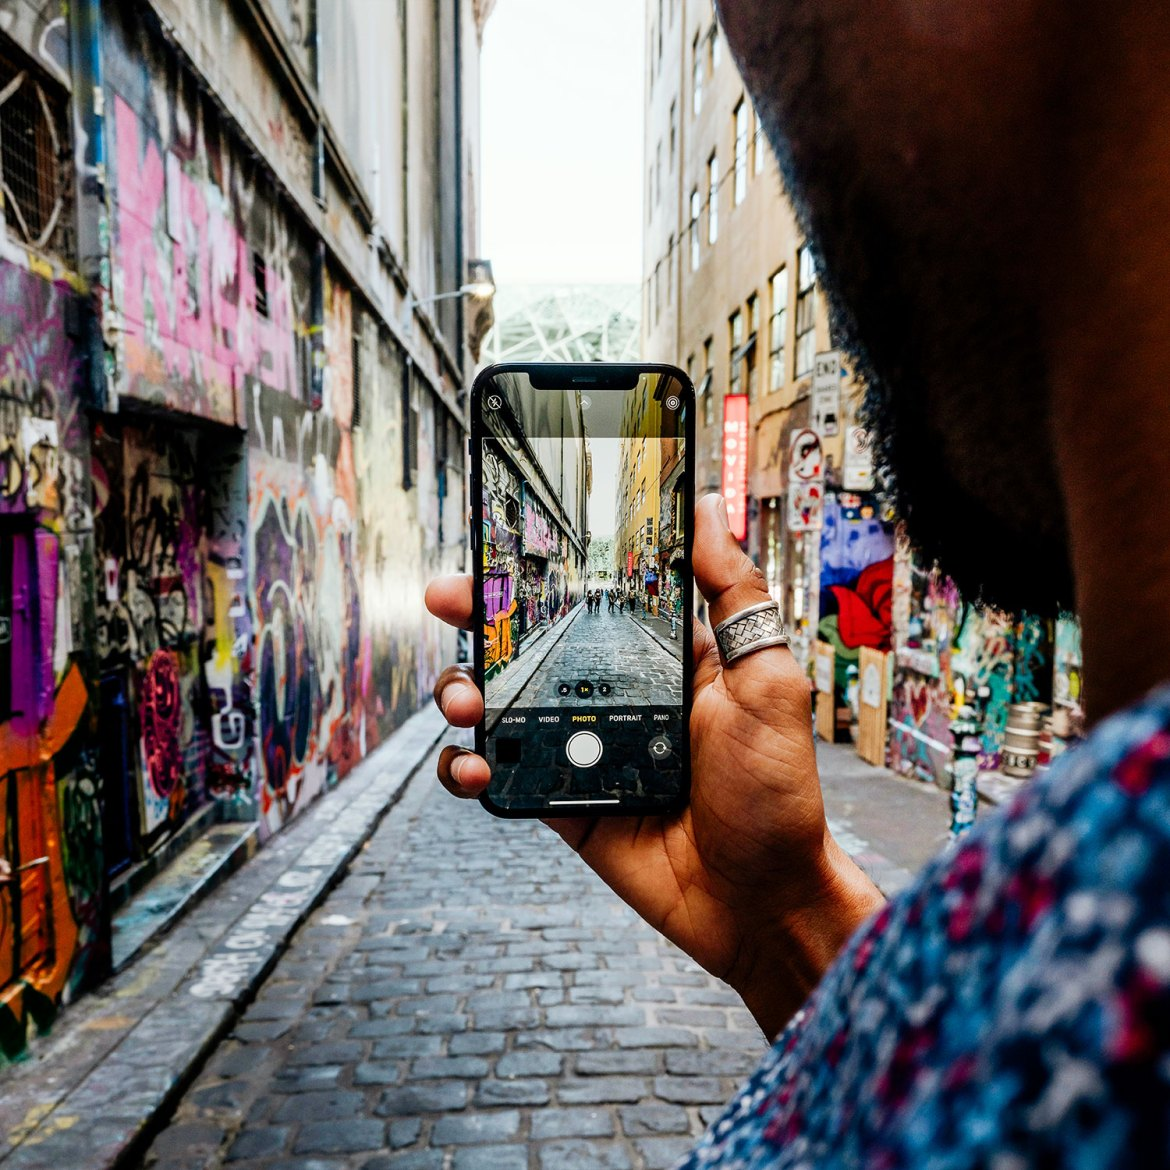 Melbourne's Hosier Lane is one of the city's most colourful, and situated close to the famed collection of MoVida restaurants and bars